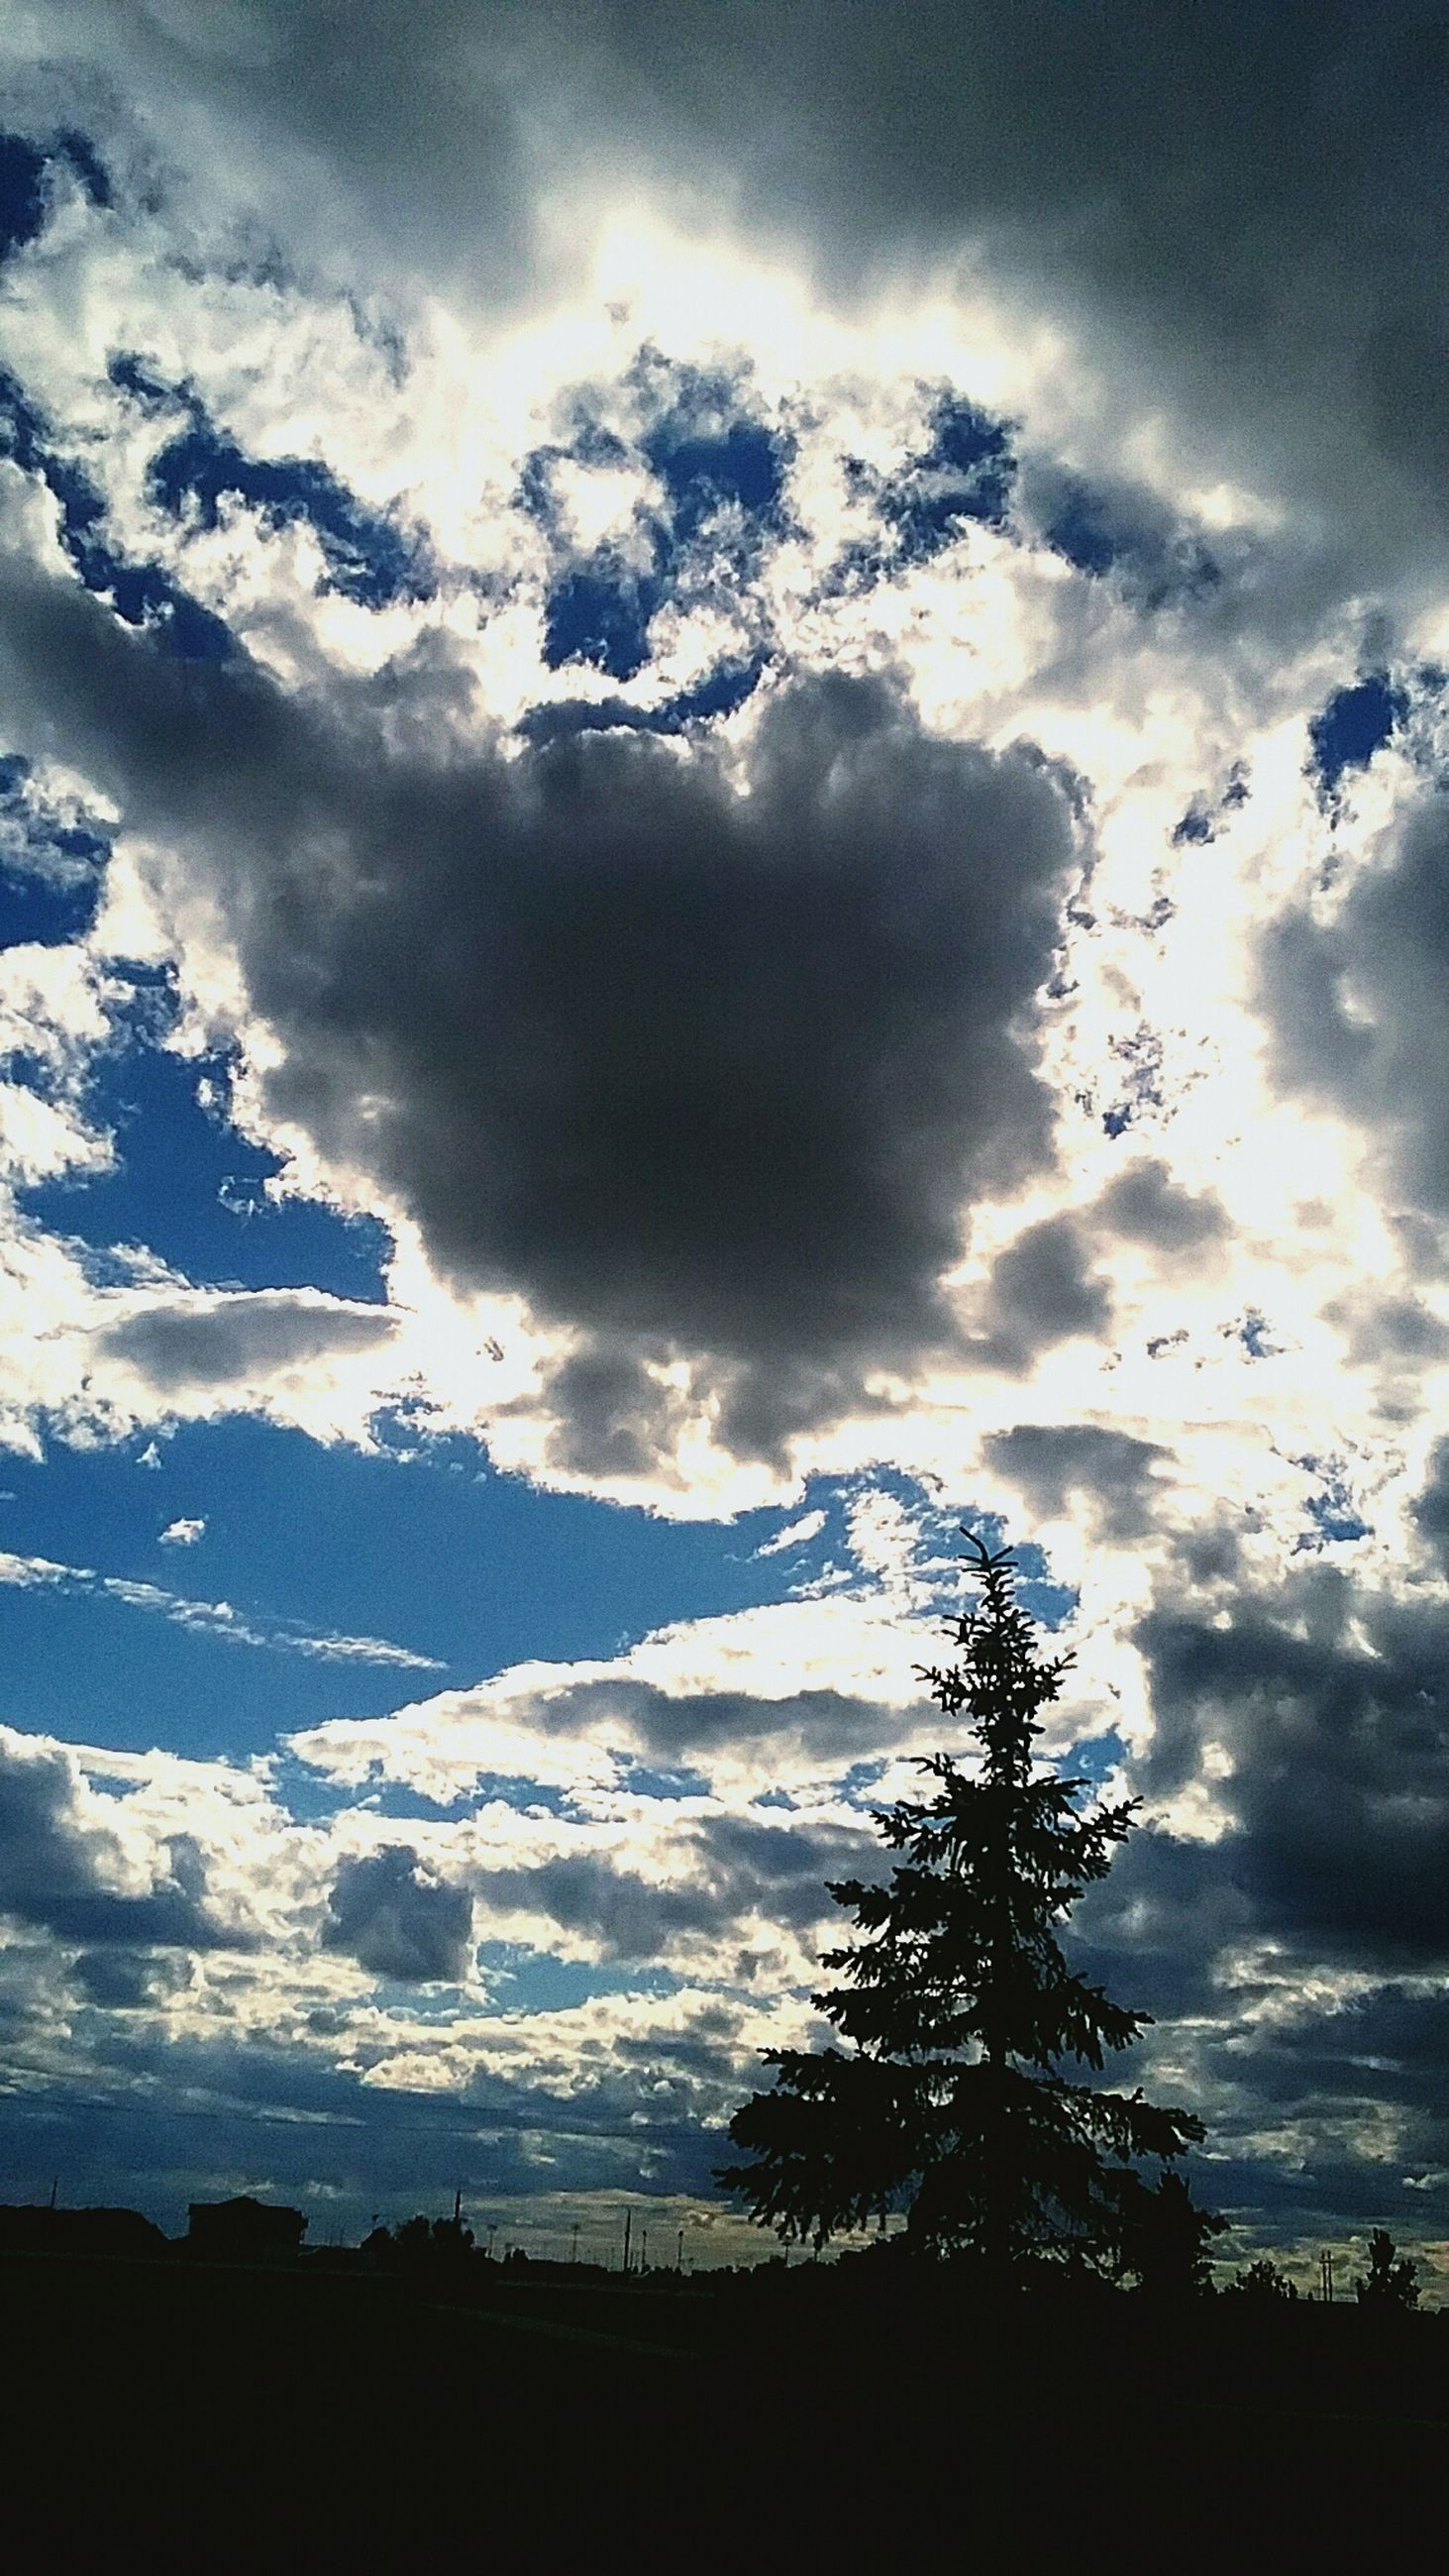 silhouette, cloud - sky, sky, tree, beauty in nature, no people, nature, tranquil scene, tranquility, scenics, outdoors, low angle view, day, landscape, sunlight